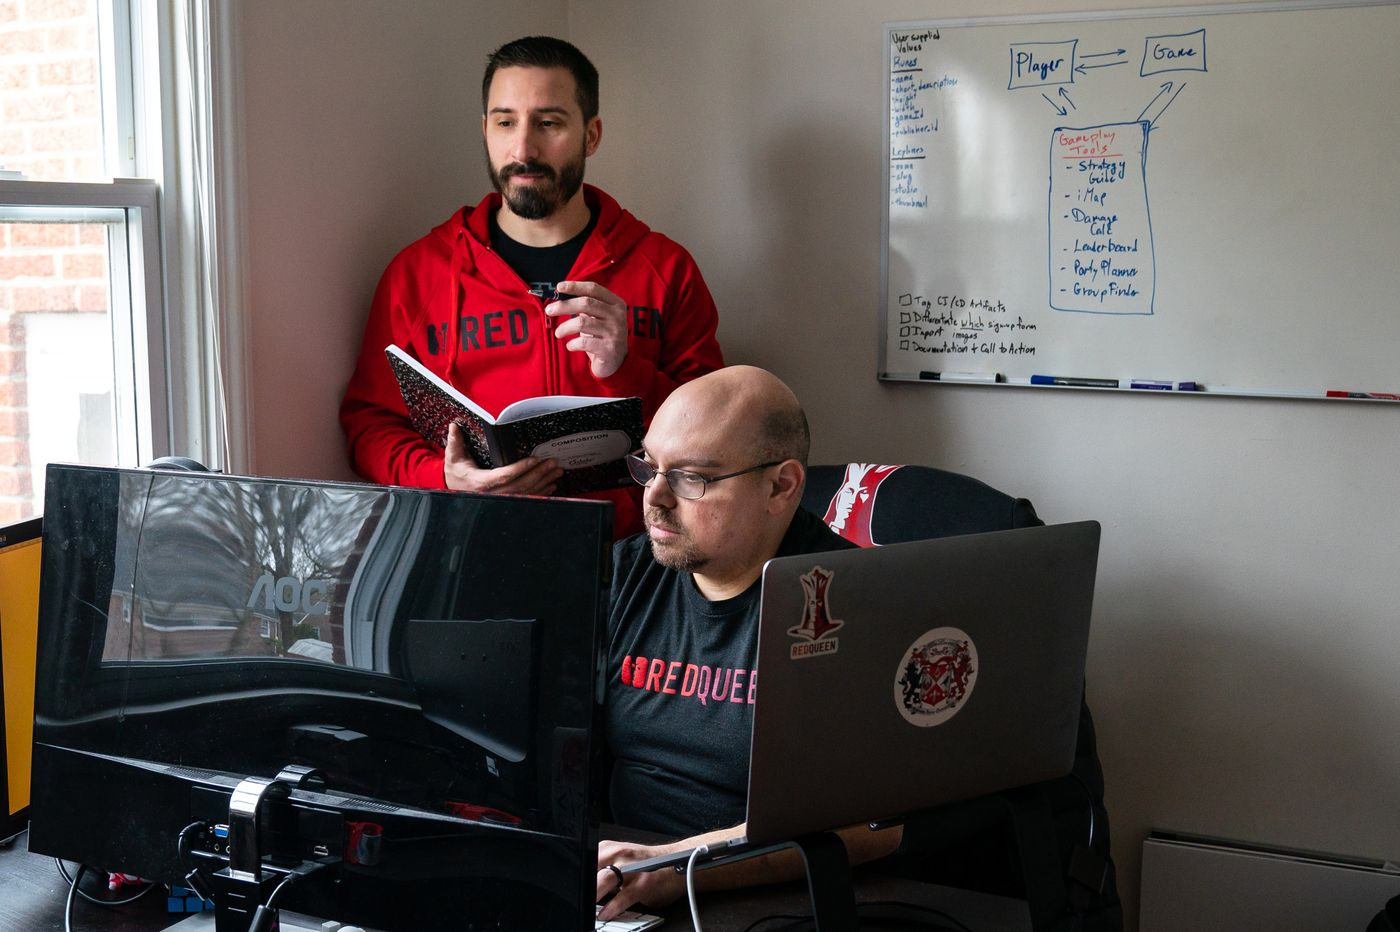 Need help winning at video games? This Philly start-up sells strategy